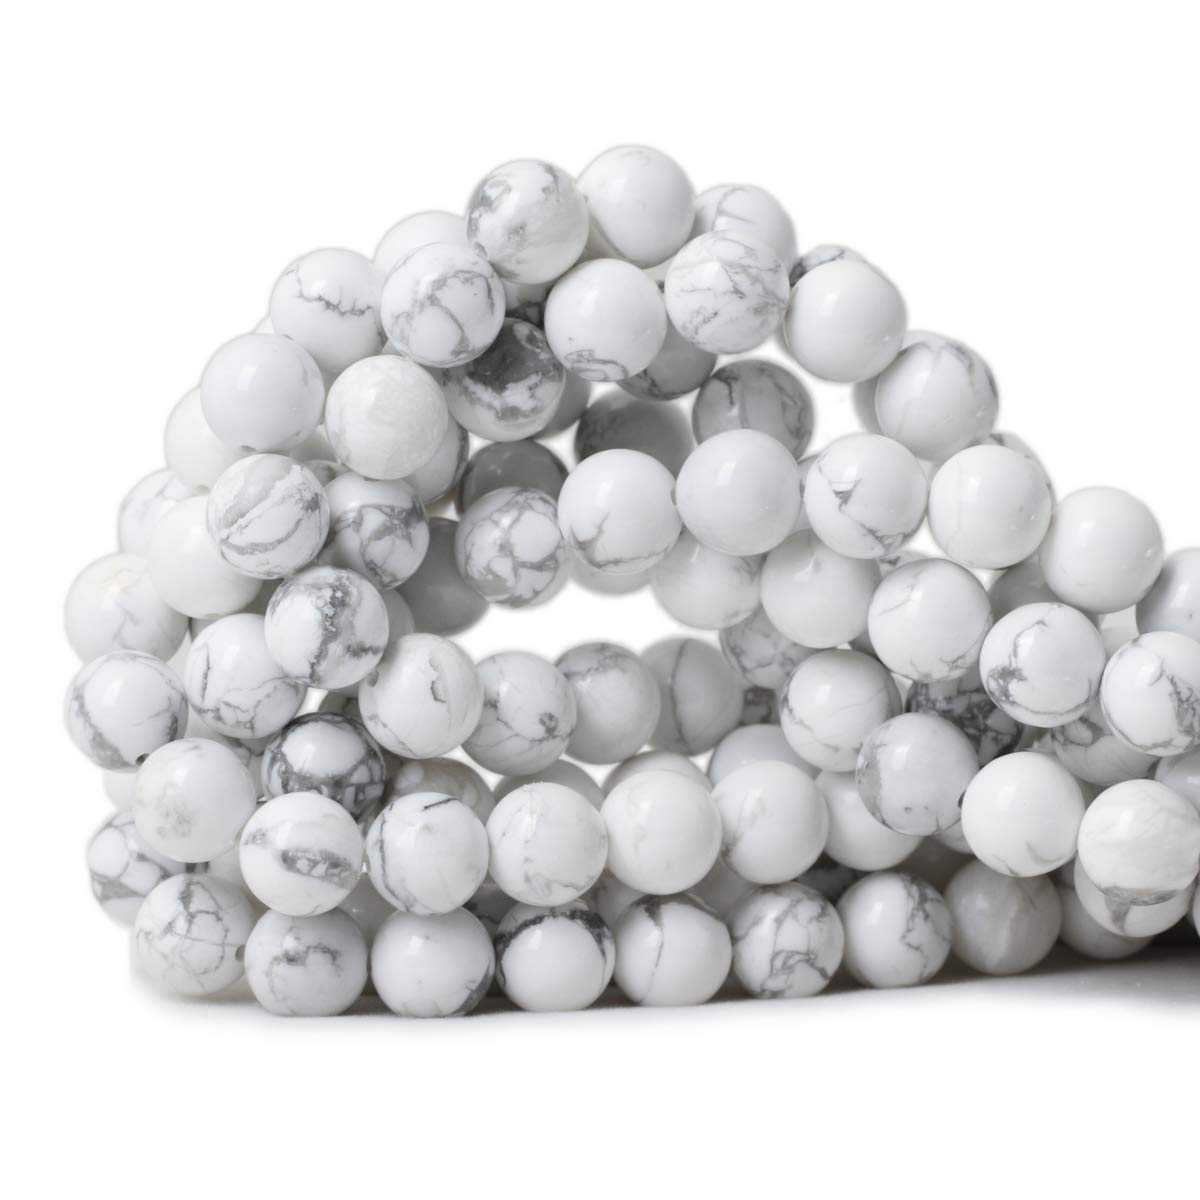 White Howlite Beads 10mm Qiwan 35PCS 10mm Natural African Turquoise Stone Round Loose Beads for Jewelry Making DIY Bracelet Making Supplies 1 Strand 15